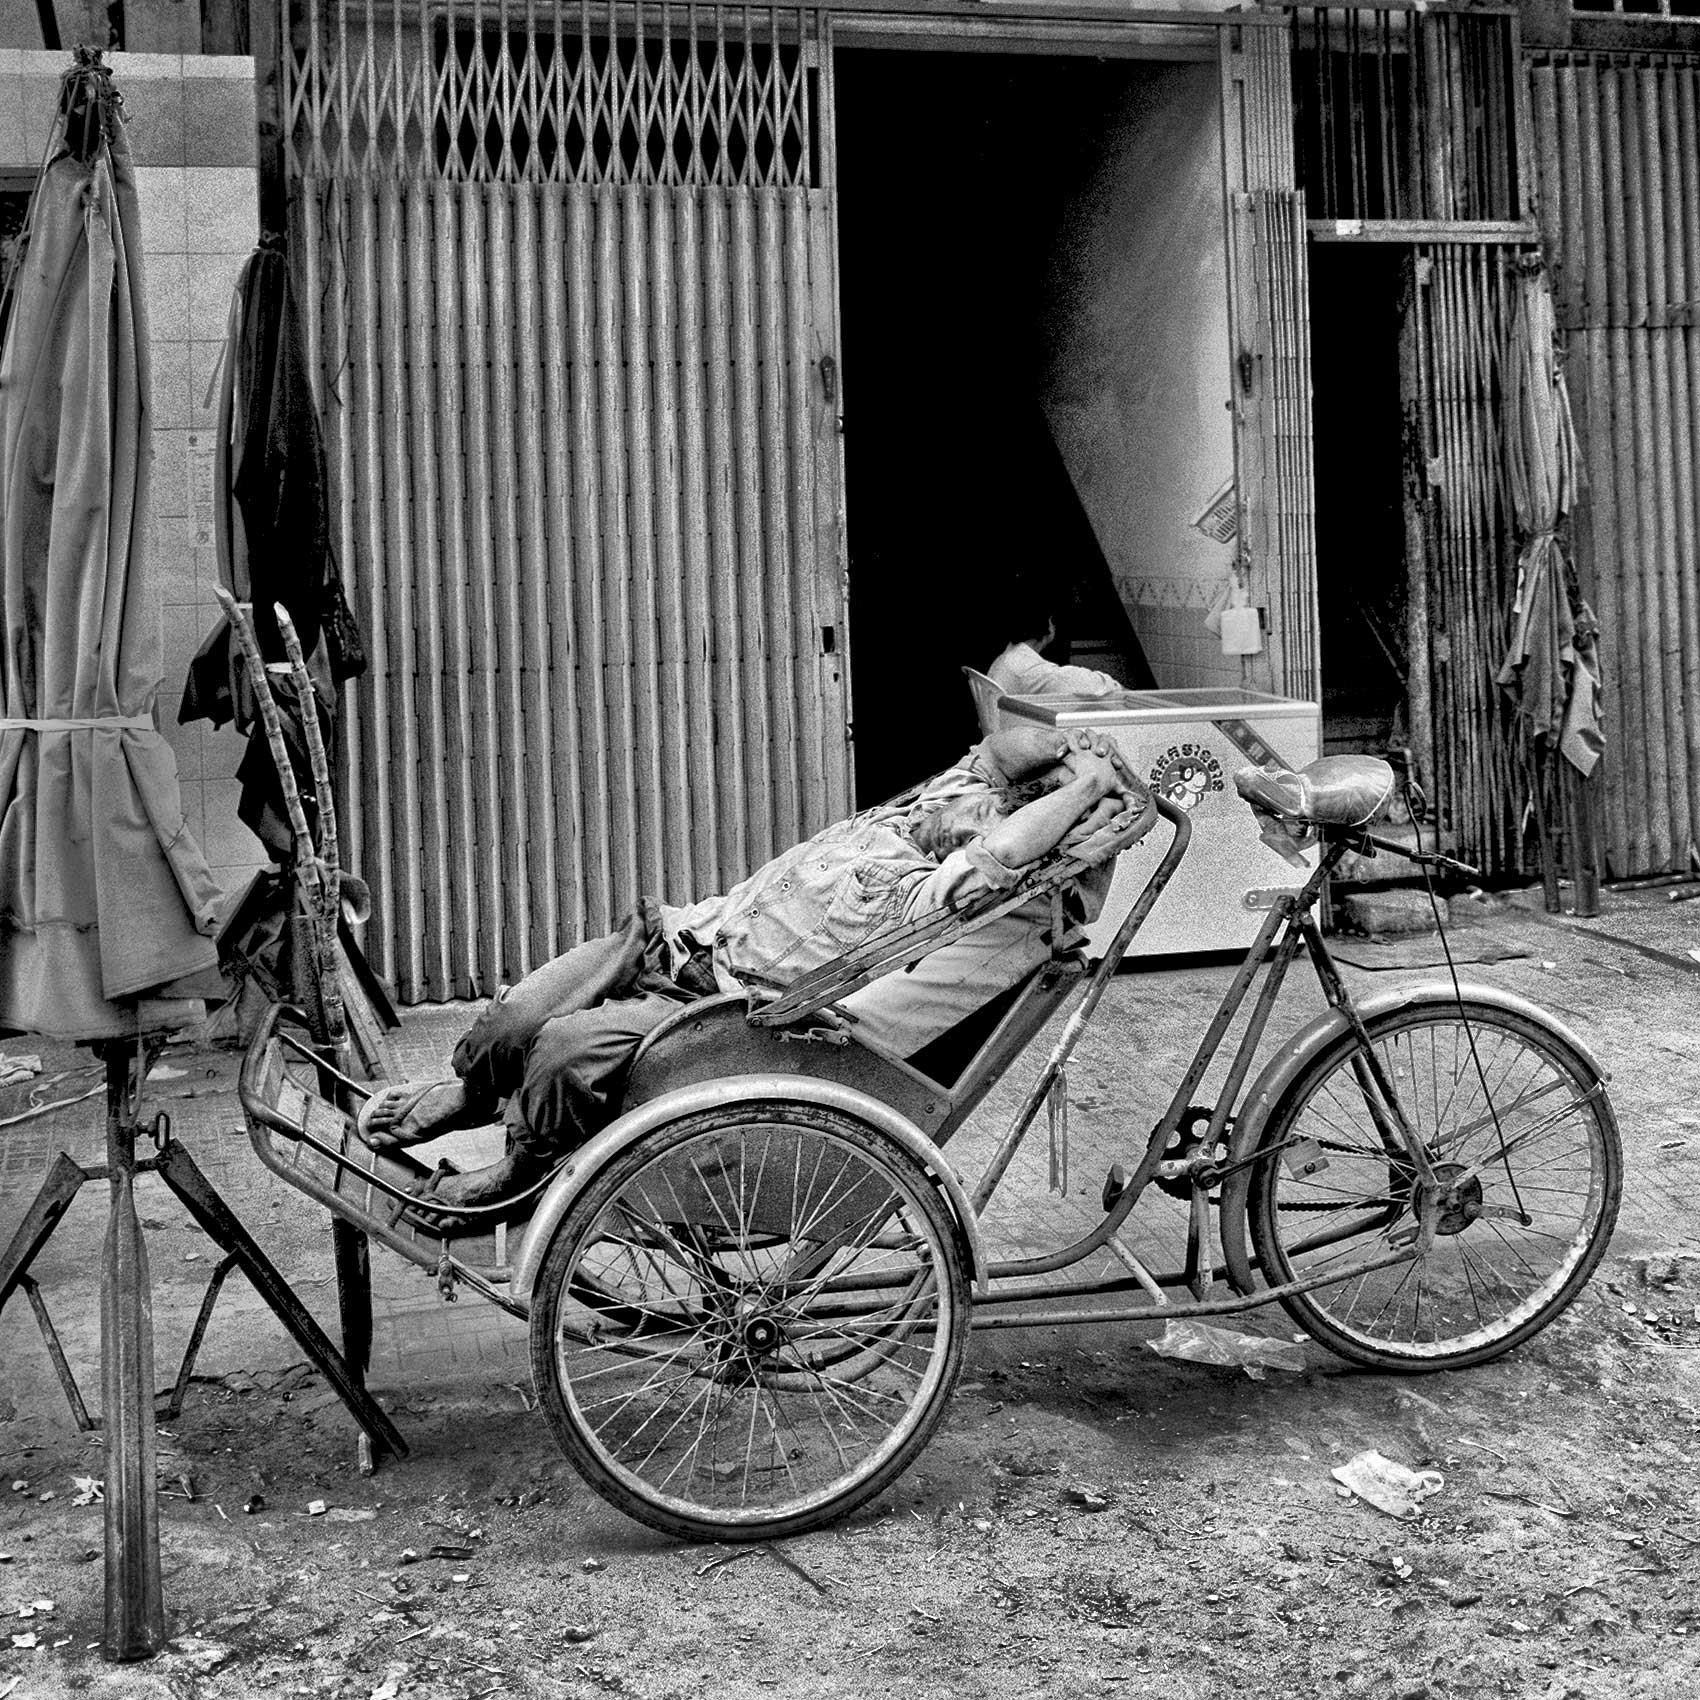 a-pedicab-driver-takes-a-nap-while-on-a-break-on-the-streets-of-phnom-penh-cambodia